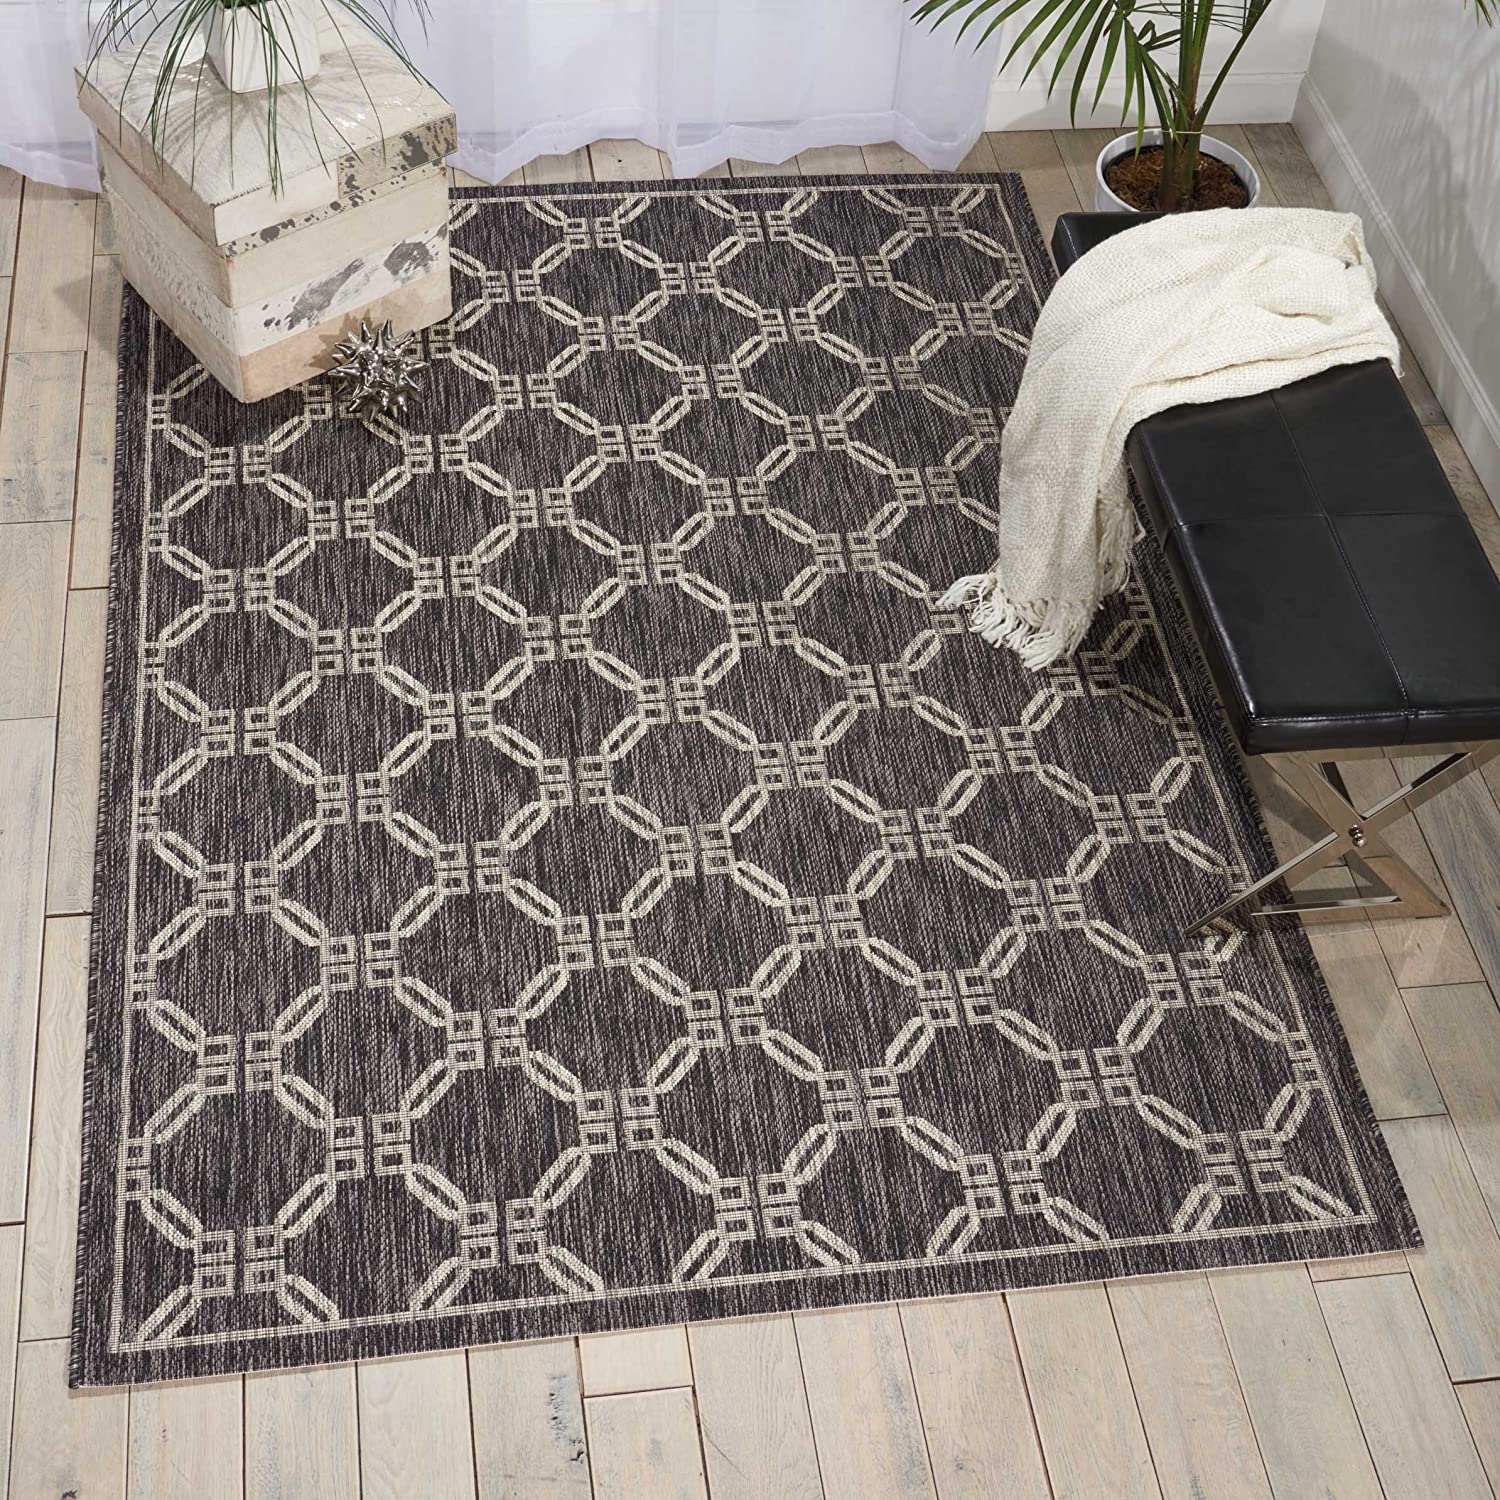 Nourison Garden Party Charcoal Indoor/Outdoor Area Rug 5 Feet 3 Inches by 7 Feet 3 Inches, 5'3